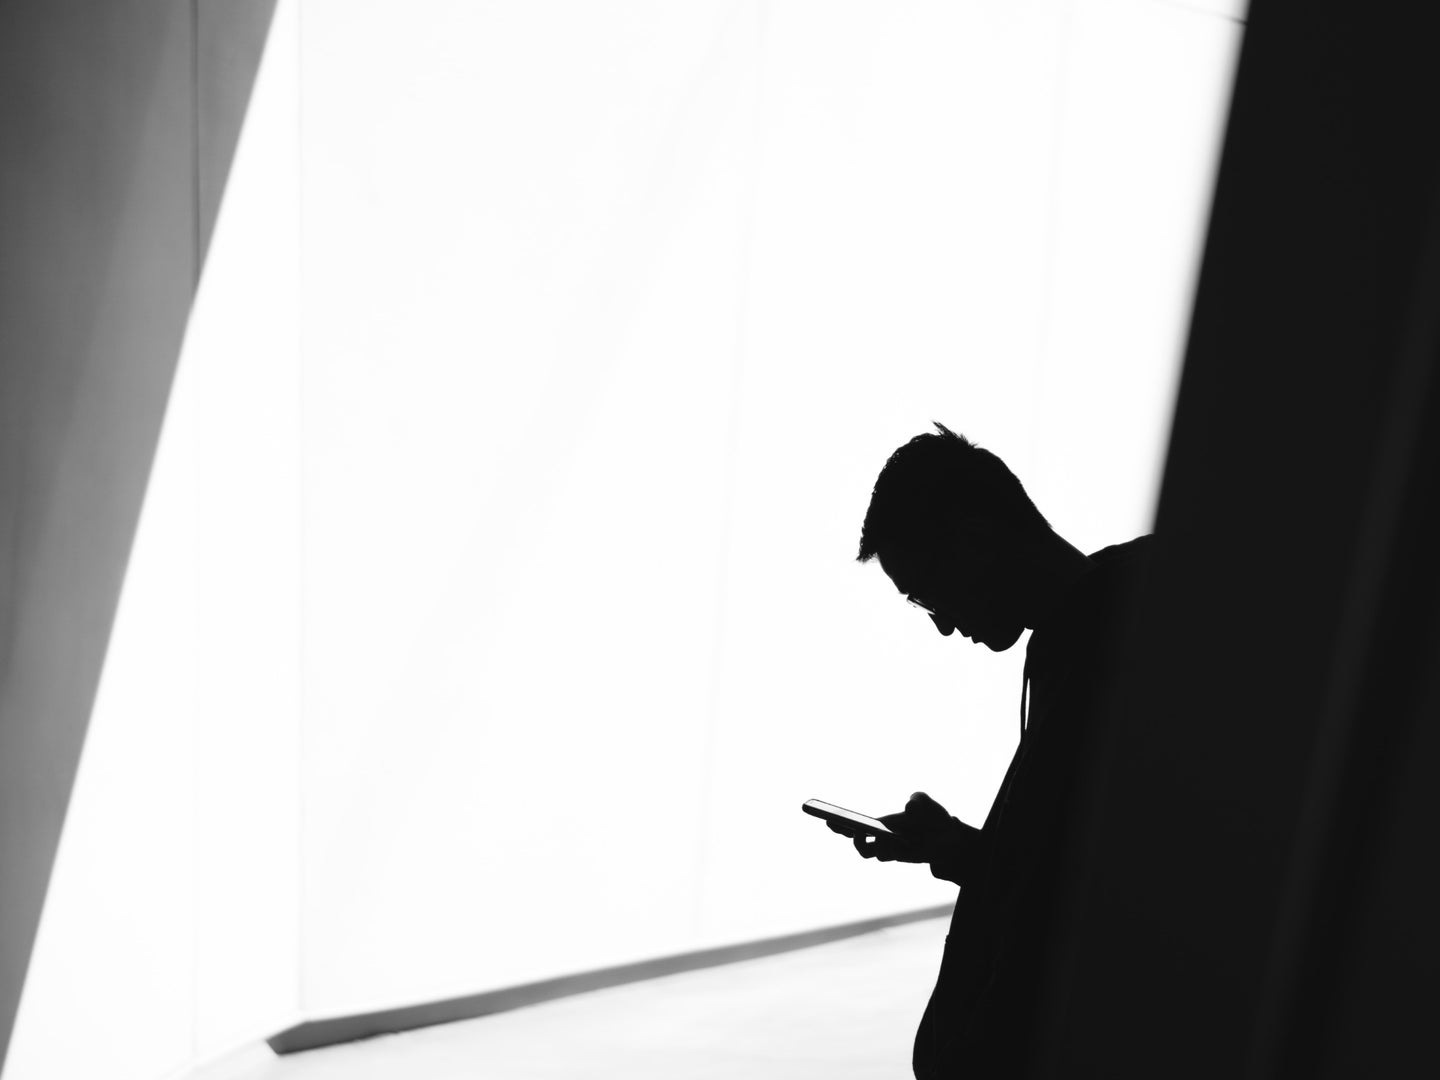 A person in silhouette using their phone.